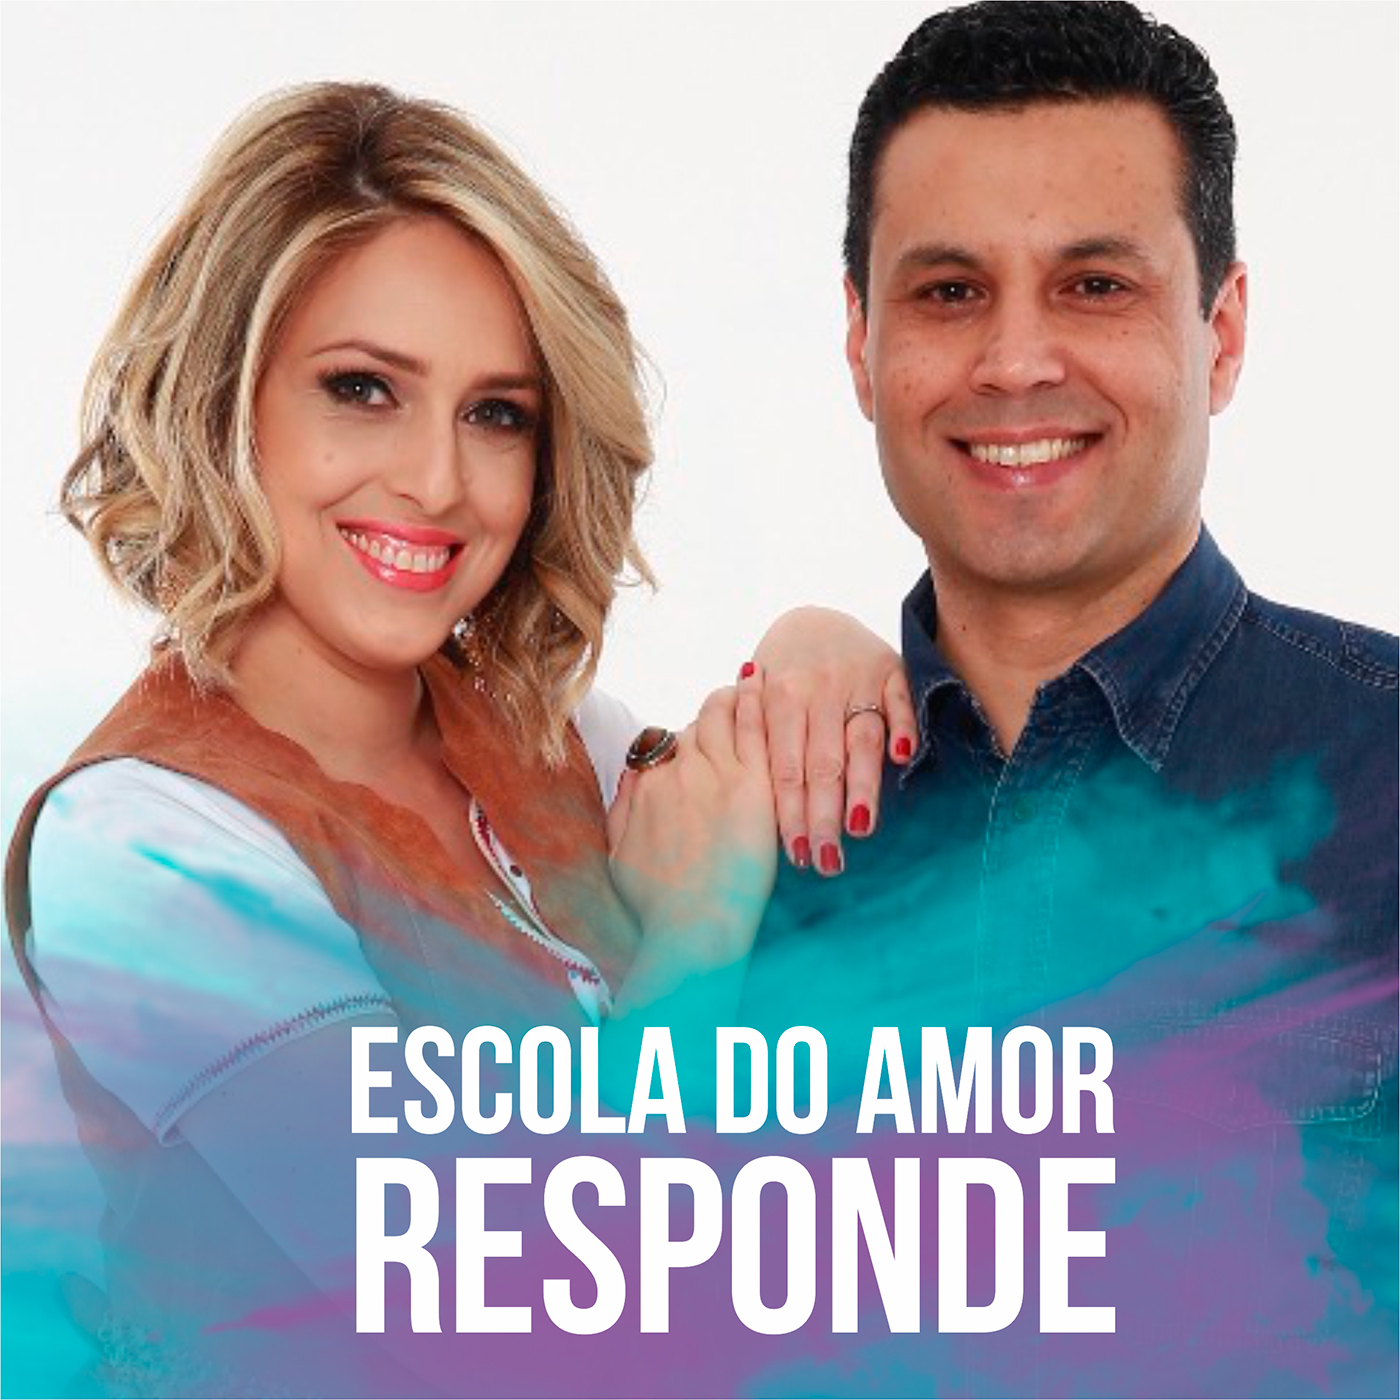 943# Escola do Amor Responde (no ar 27/03/2017)